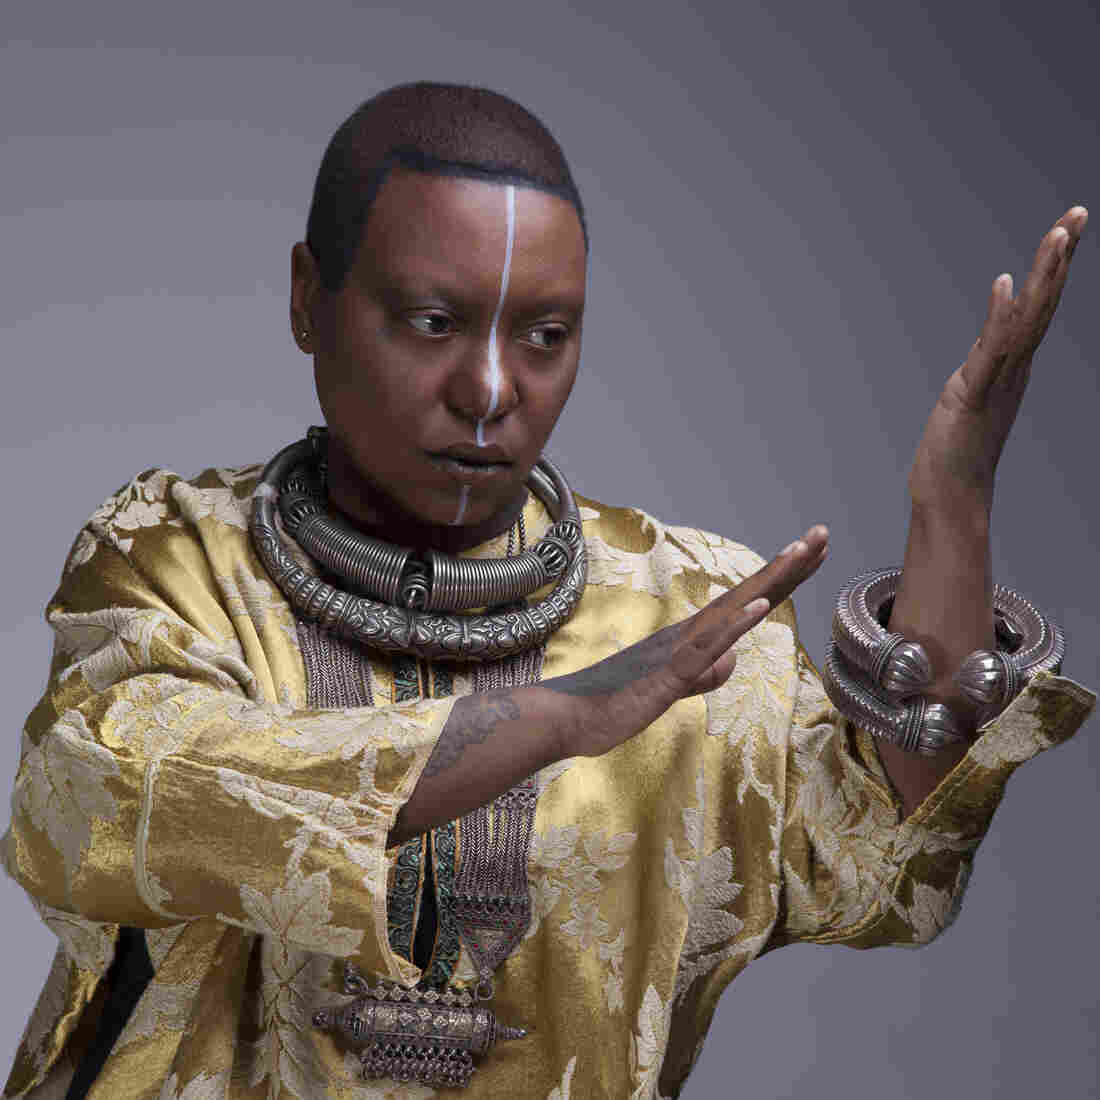 First Listen: Meshell Ndegeocello, 'Comet, Come To Me'